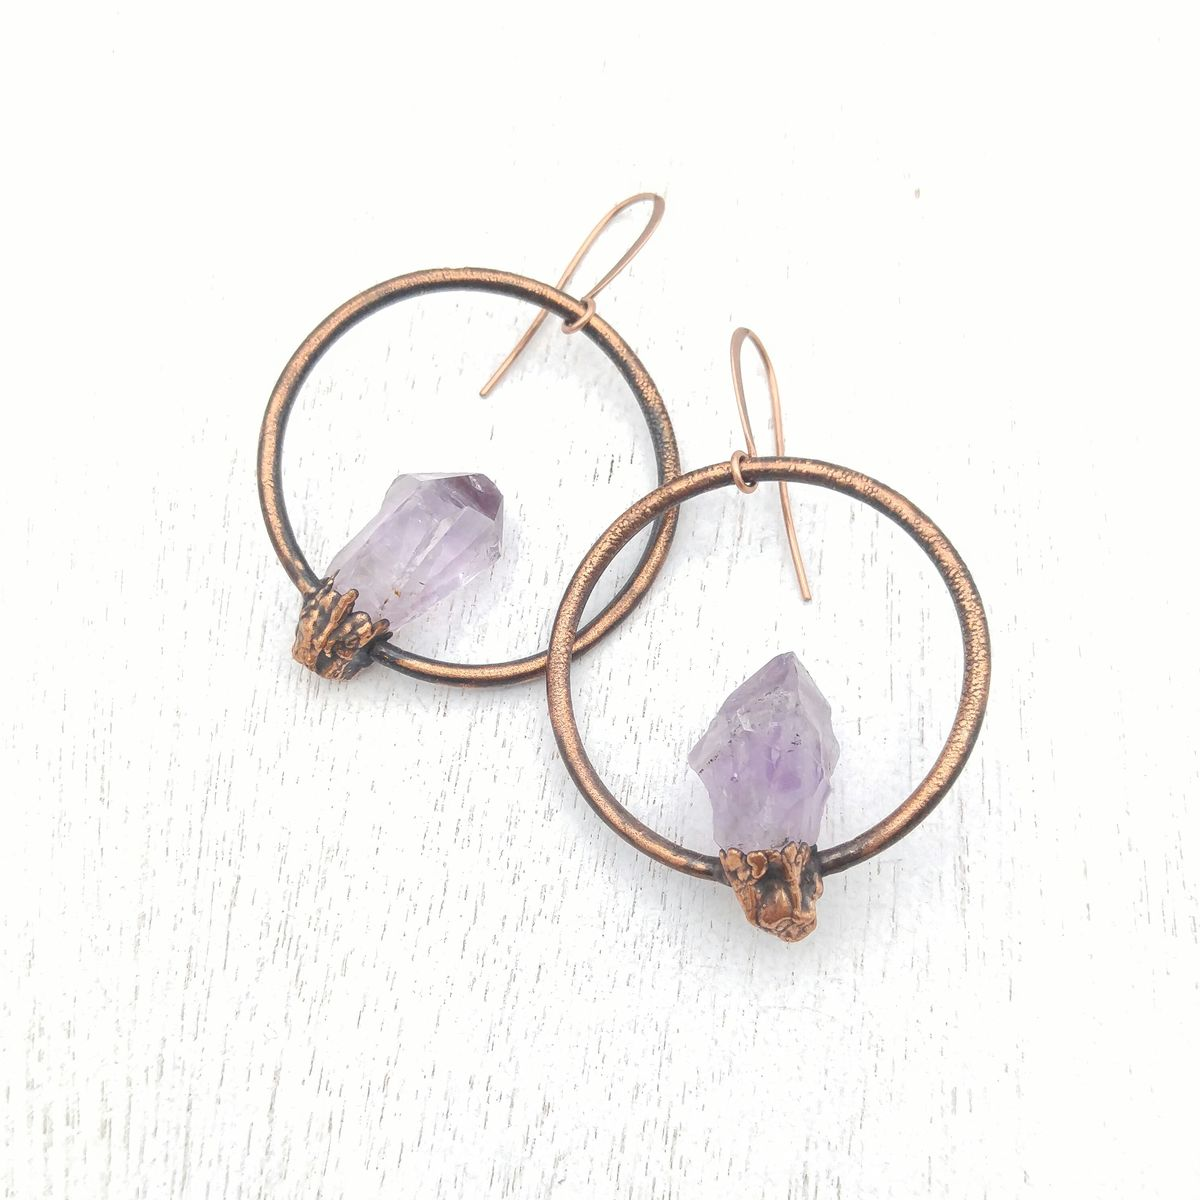 Amethyst Orb Earrings - product images  of